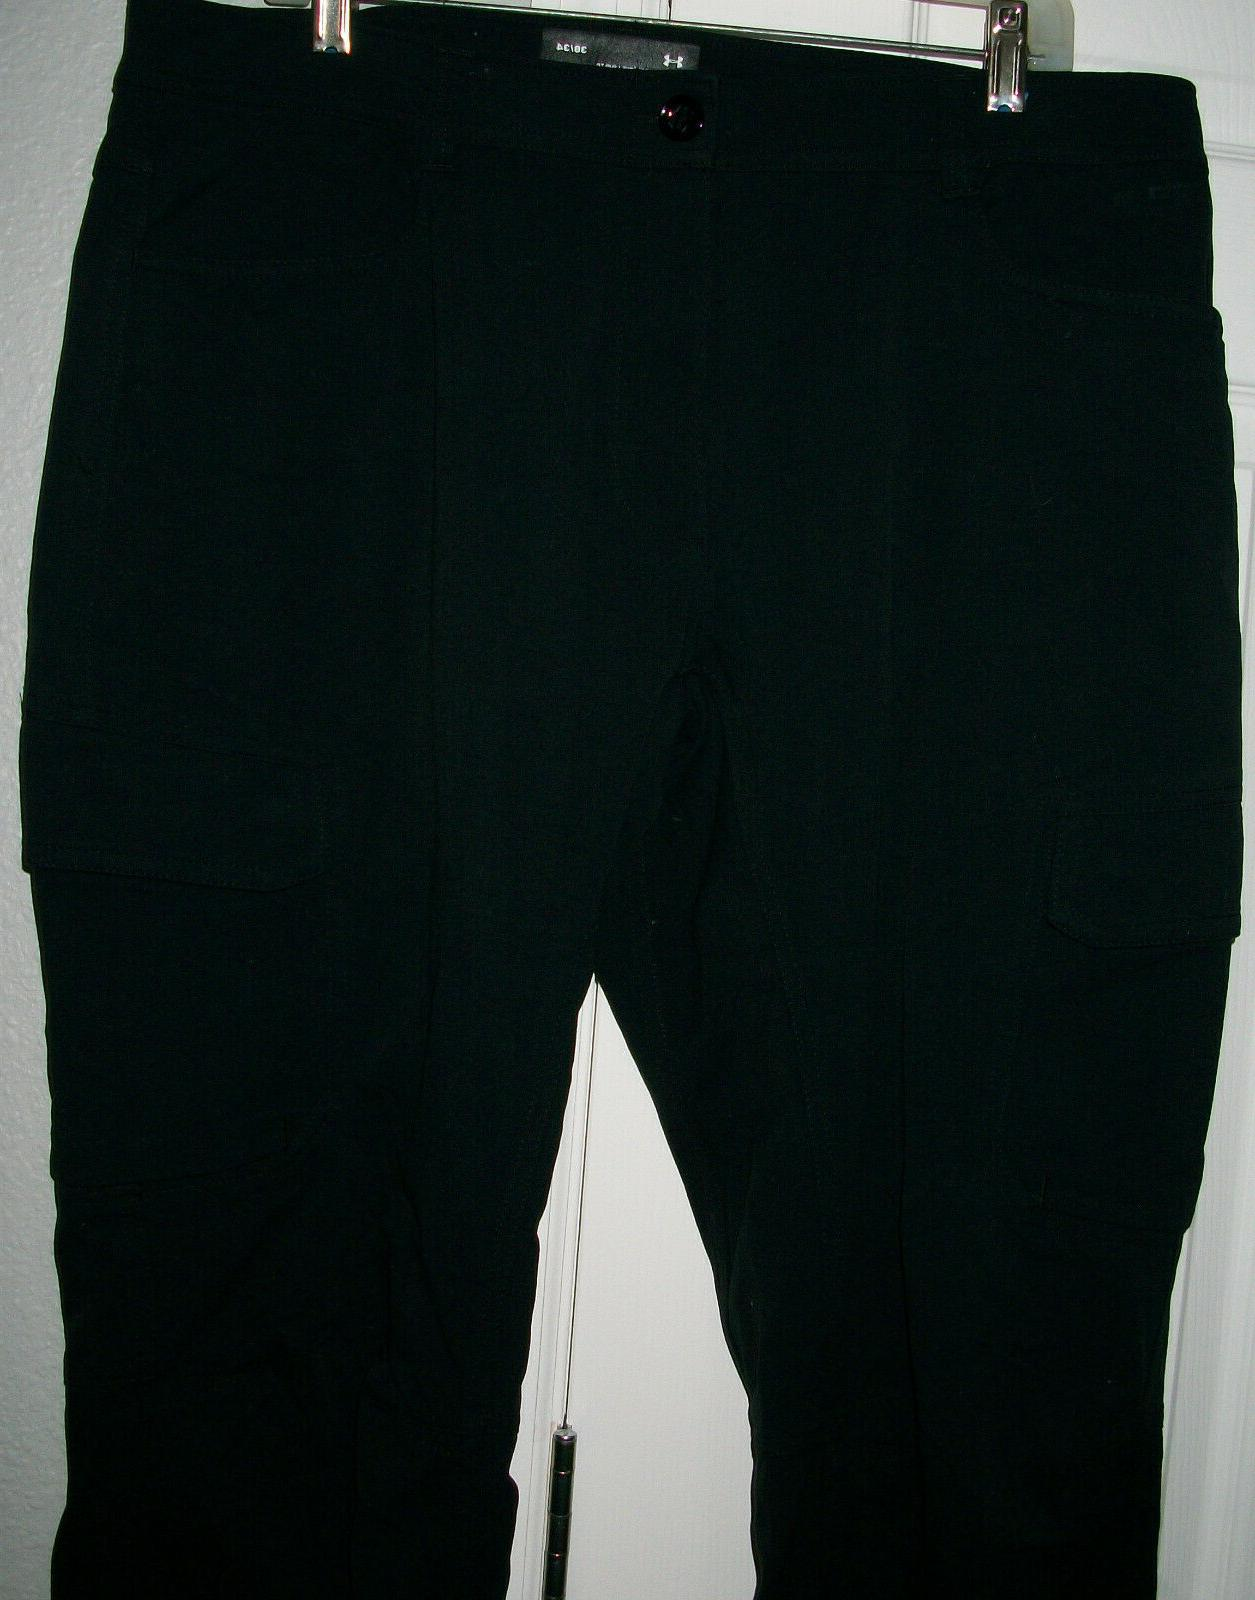 Water Pants/Jeans